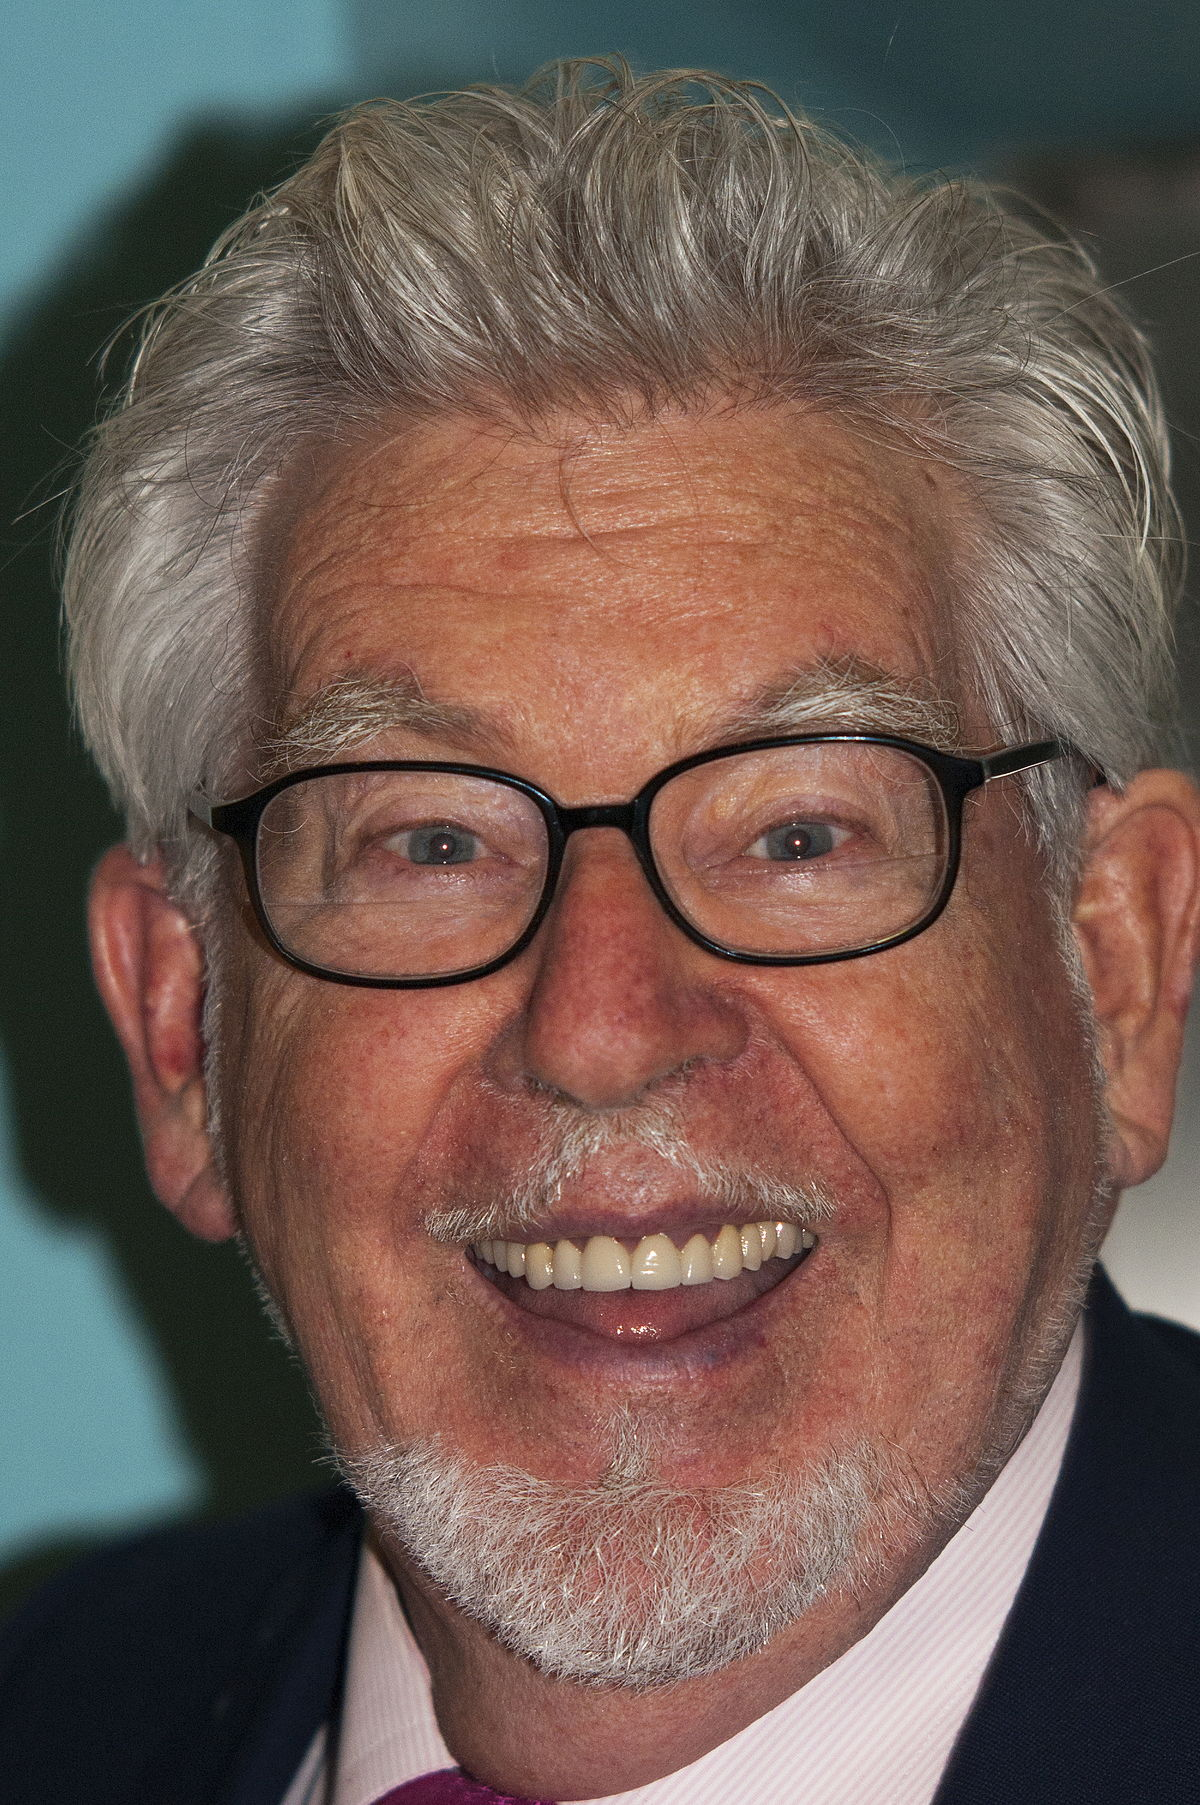 Rolf Harris Wikipedia - 24 amazing celebrity portraits made using unusual materials